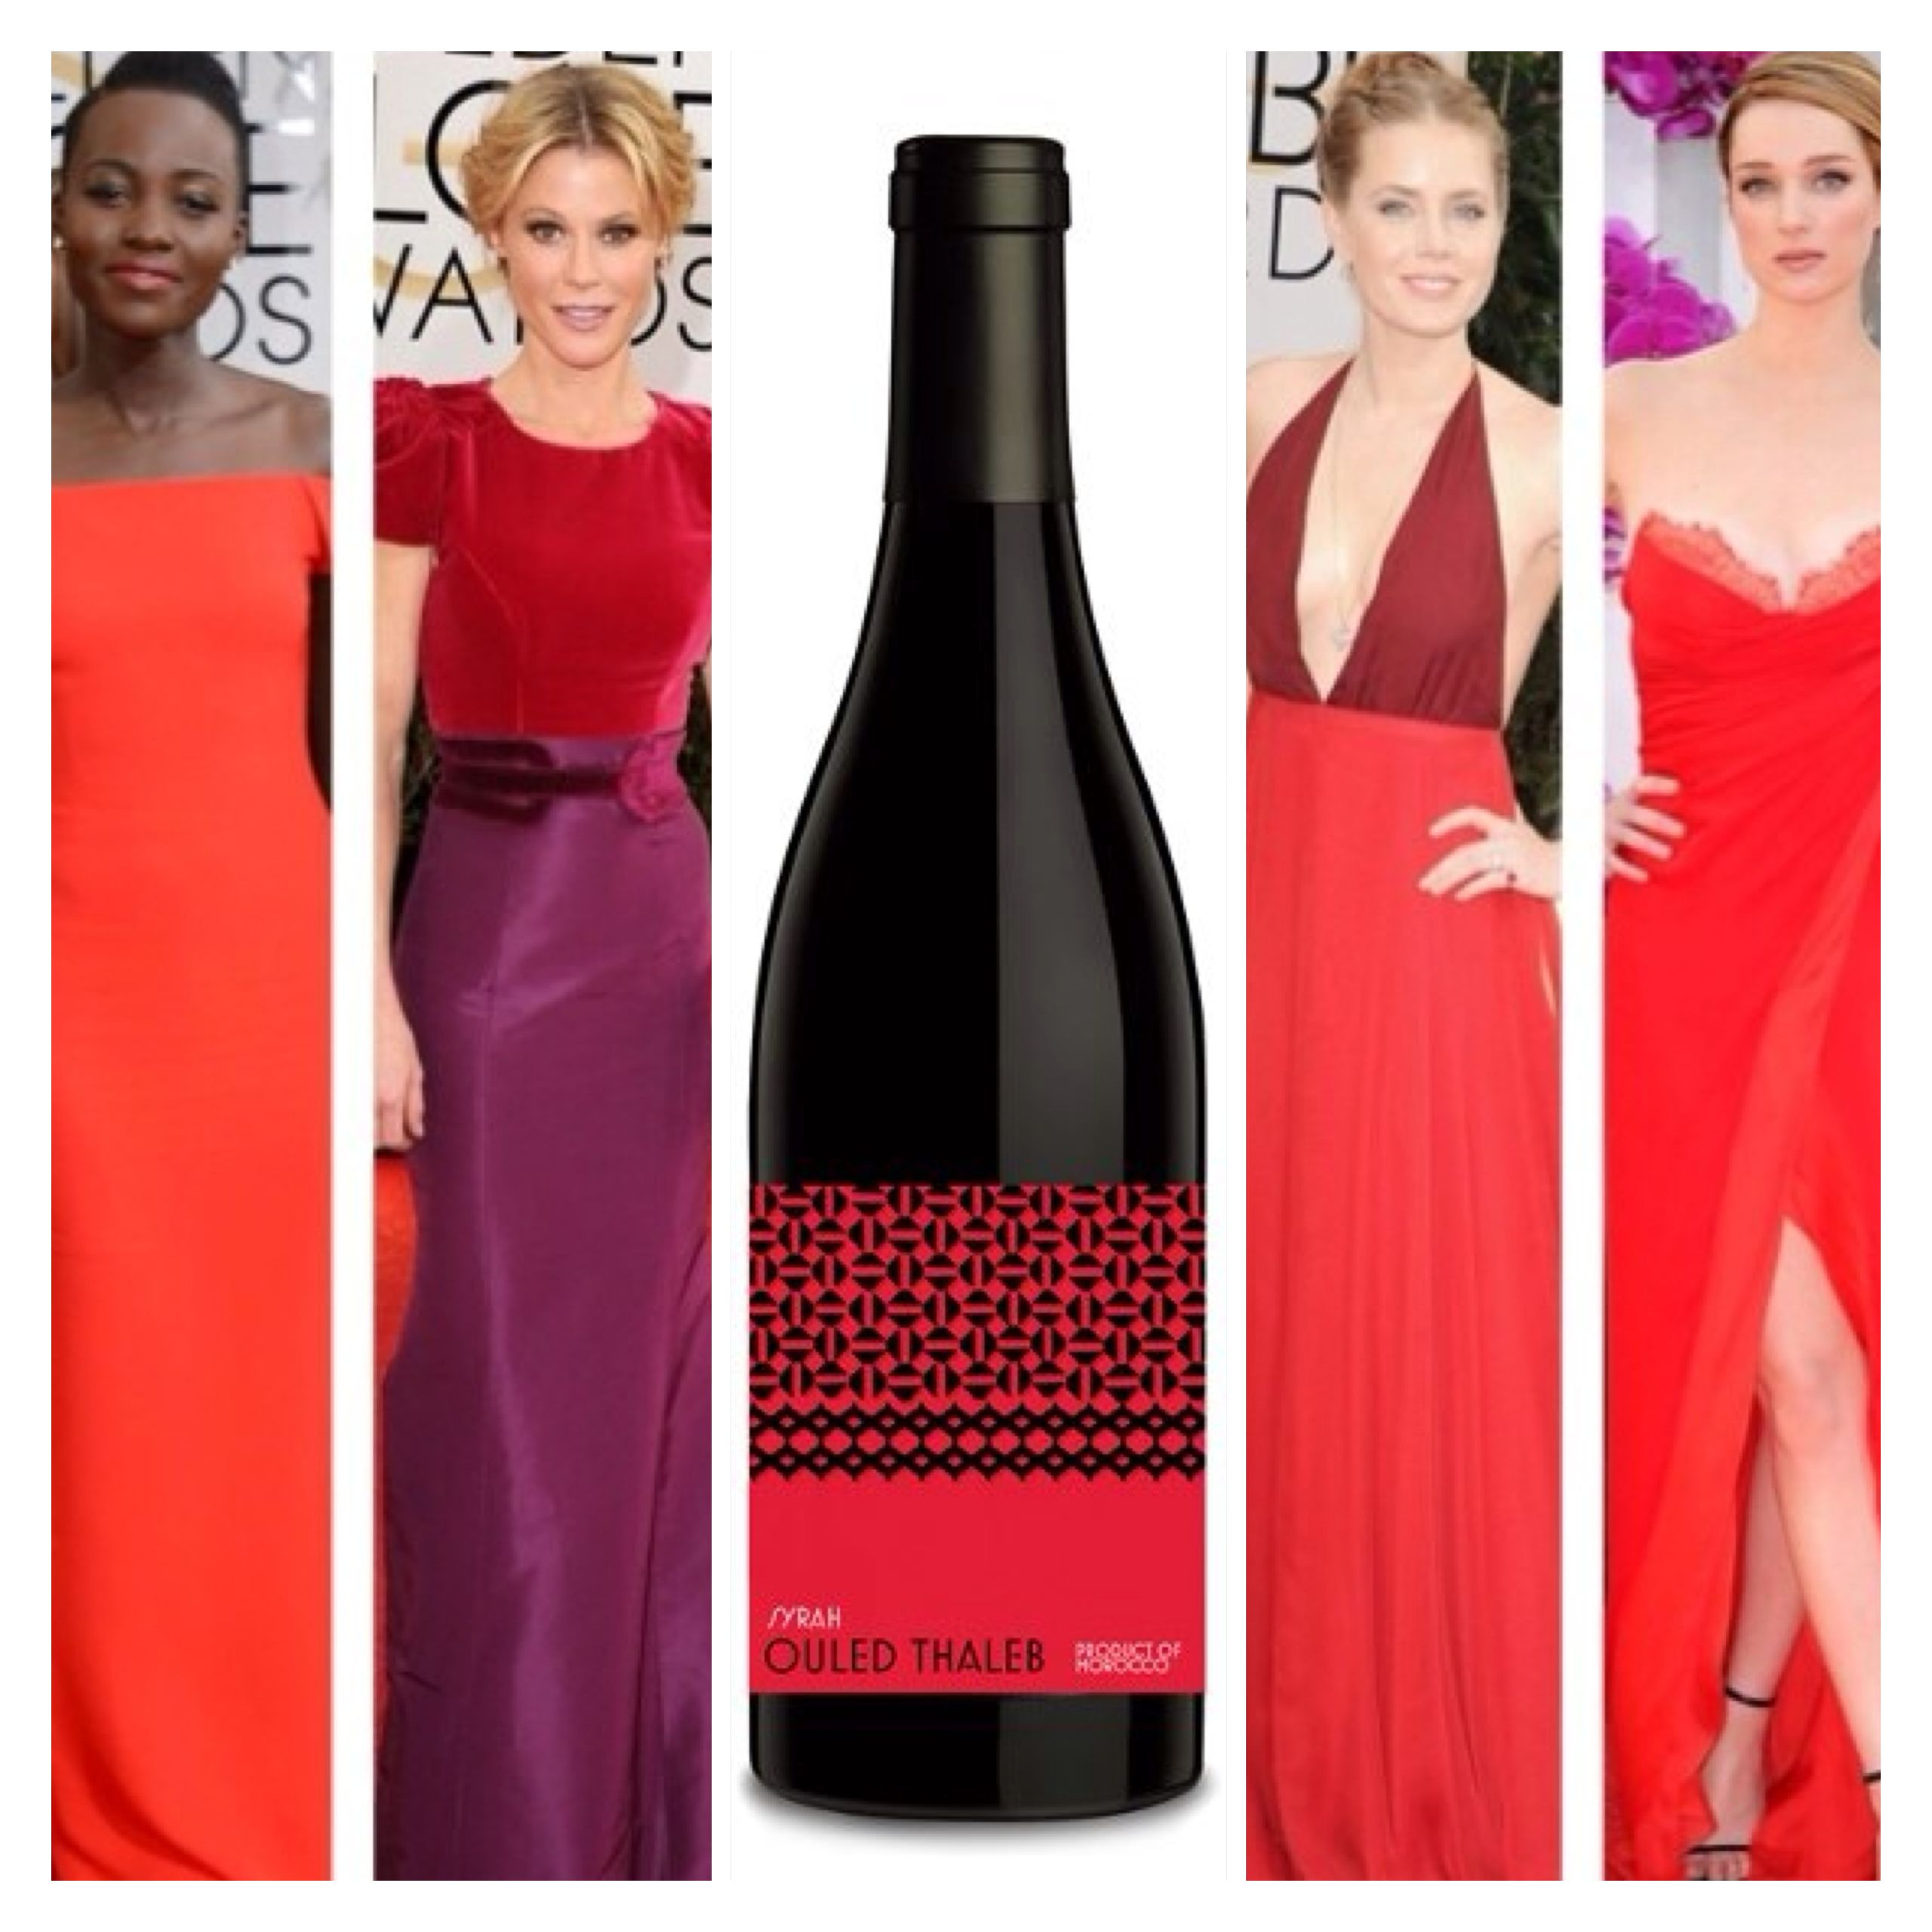 Golden Globes Who Wore It Best Moroccan Syrah Form Ouled Thaleb Red Wine Wins Wine Syrah Red Wine